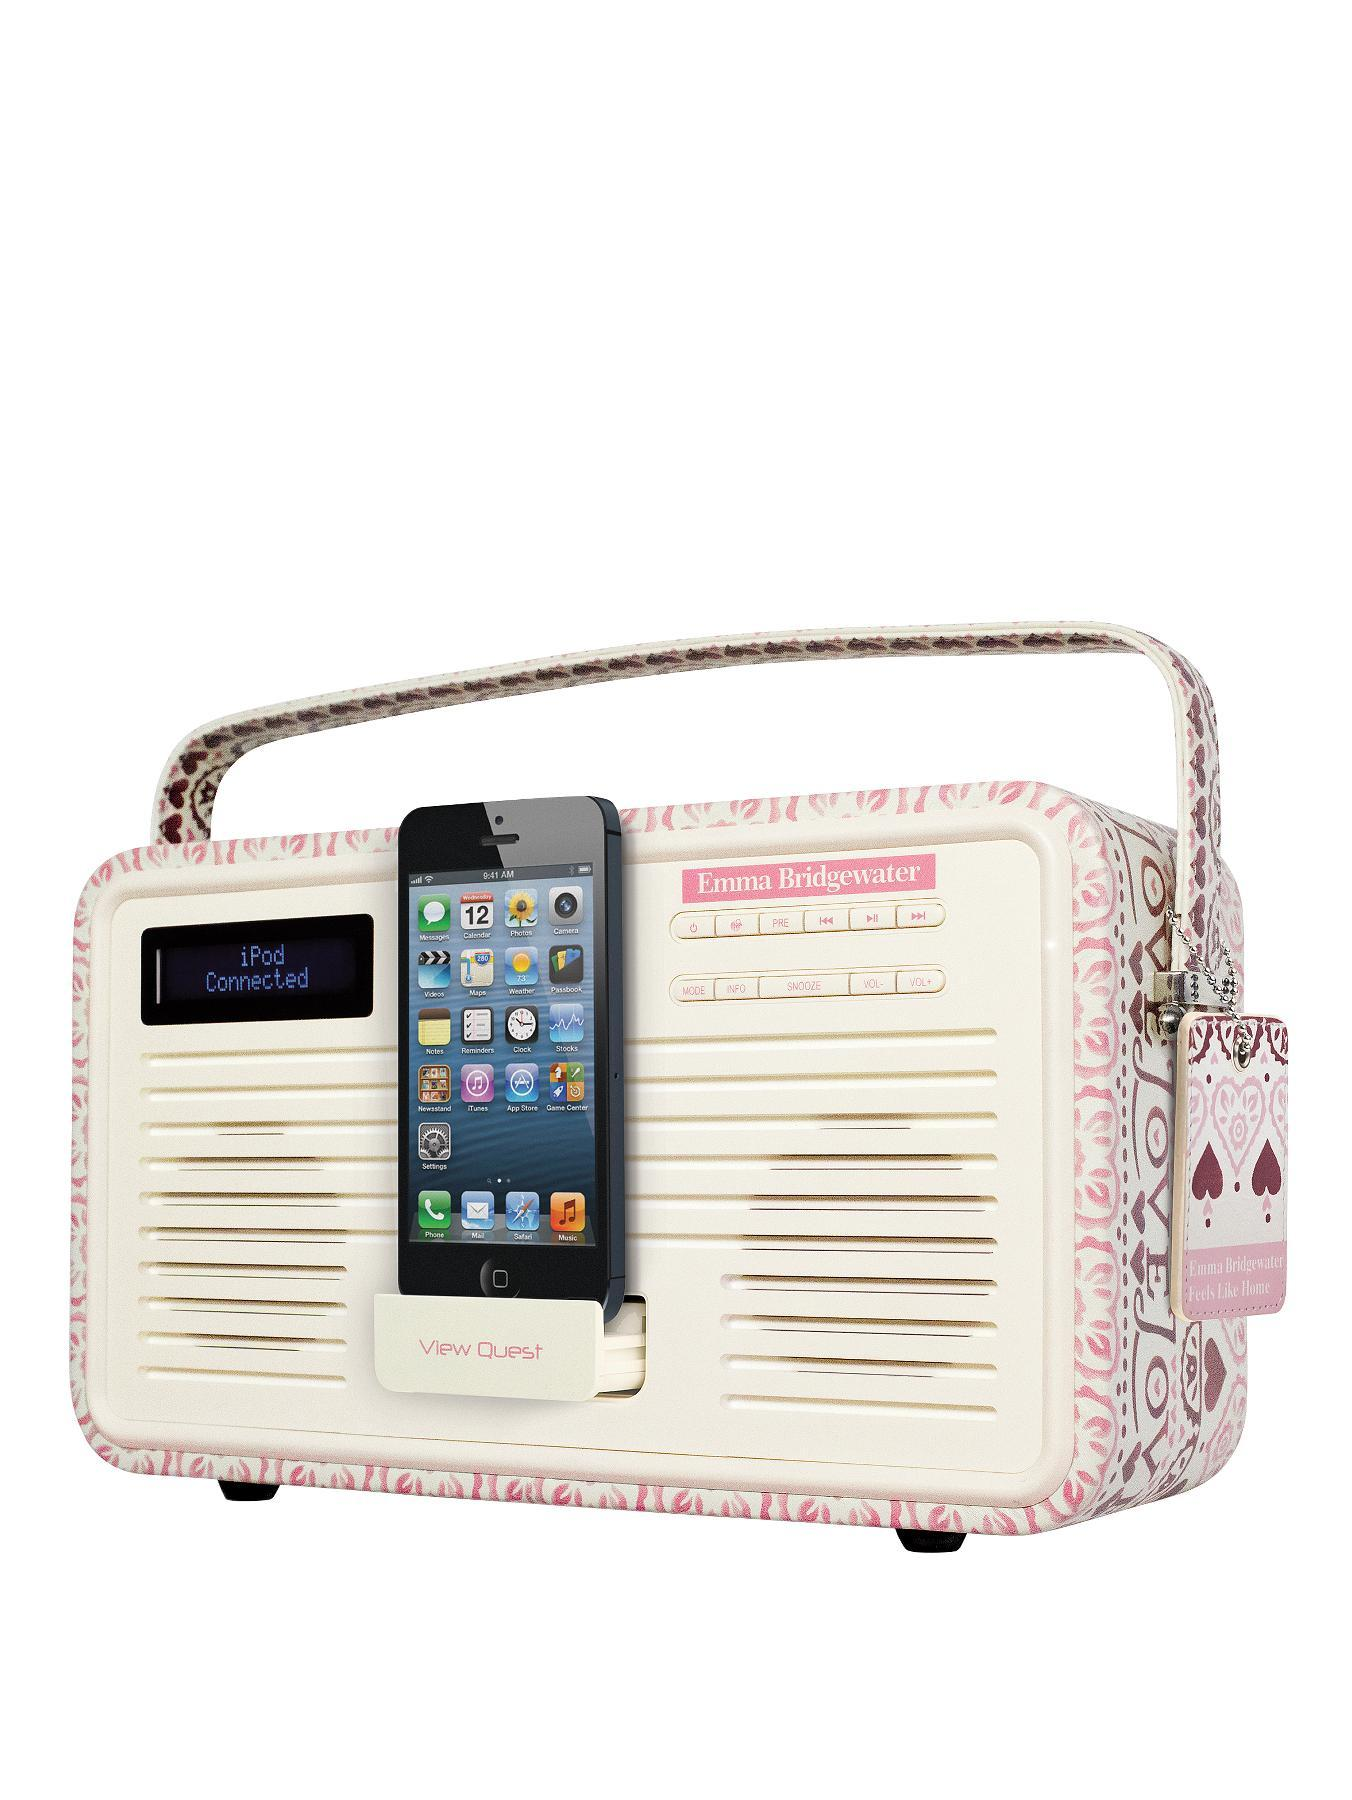 radios with ipod dock shop for cheap clock radios and save online. Black Bedroom Furniture Sets. Home Design Ideas